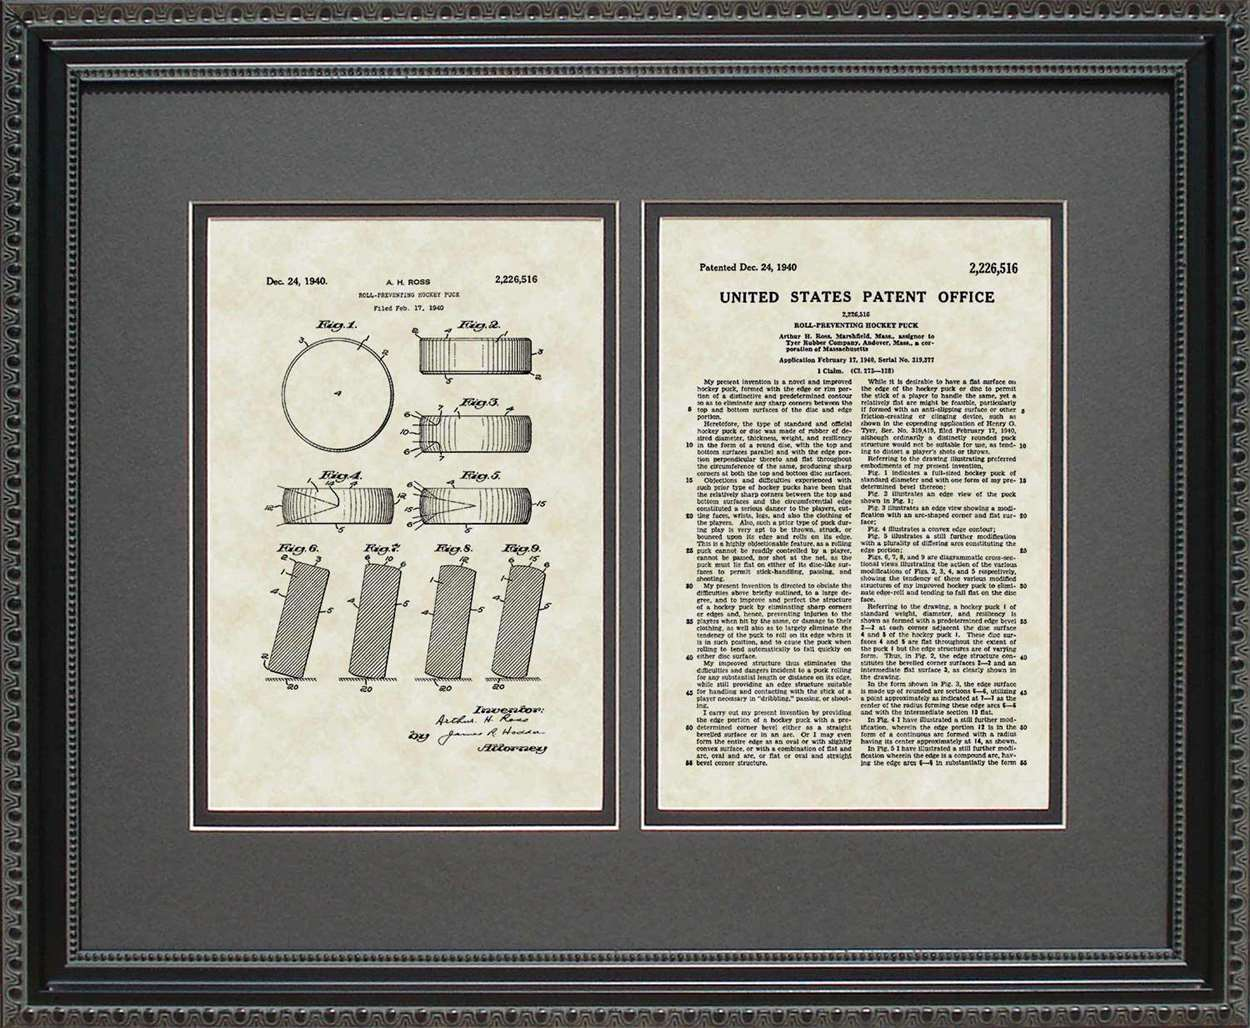 Hockey Puck Patent, Art & Copy, Ross, 1940, 16x20